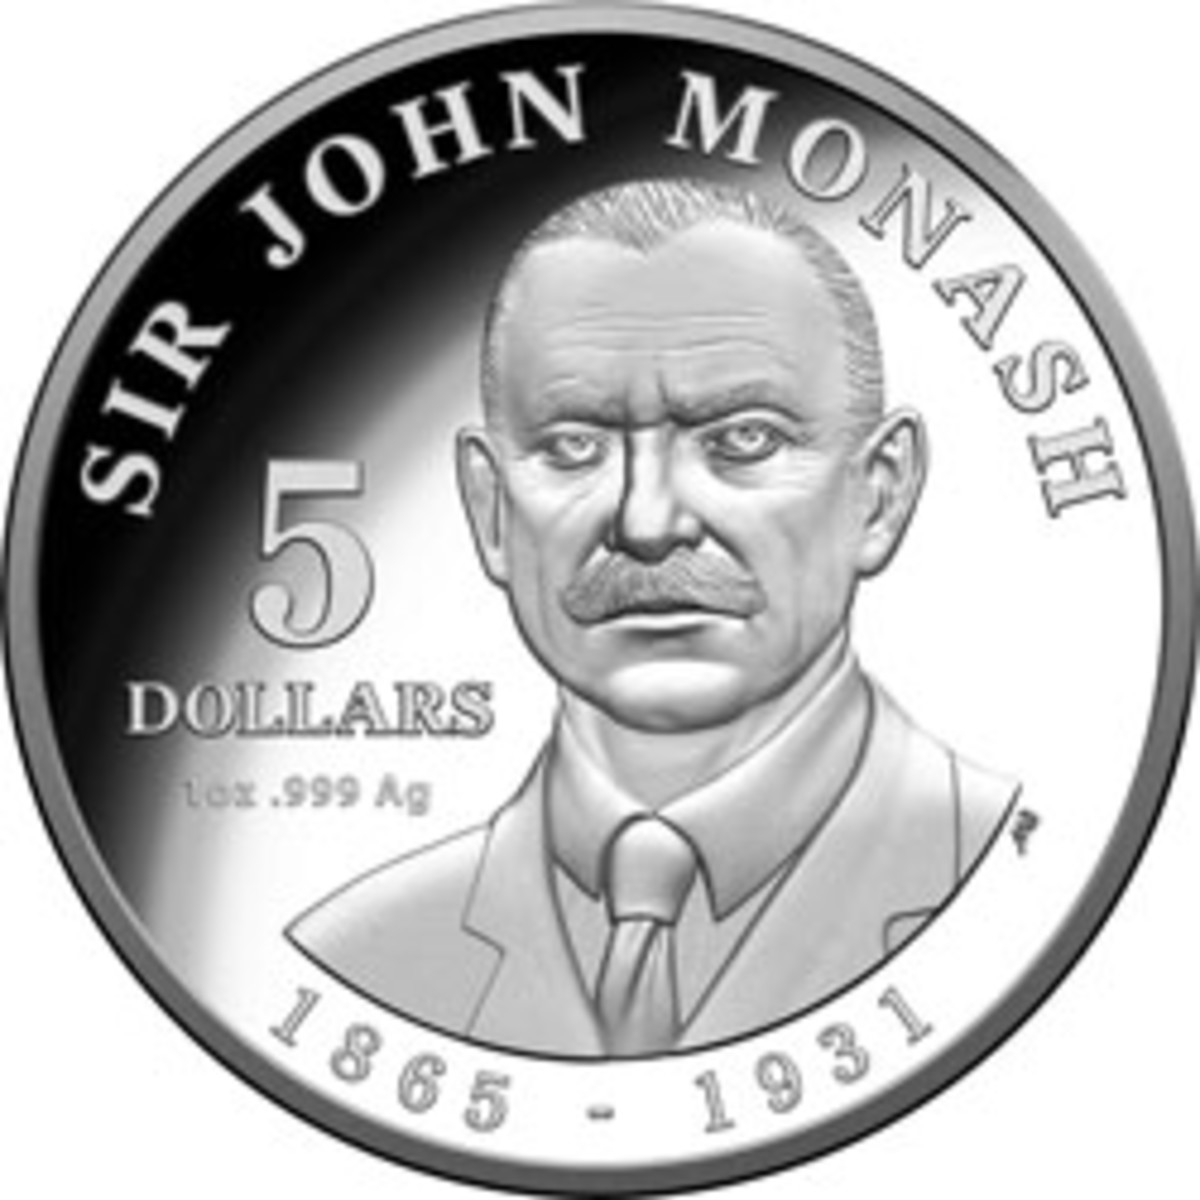 The RAM's numismatic tribute to General Sir John Monash GCMG, KCB, VD: a $5 silver proof. (Image courtesy & © RAM)